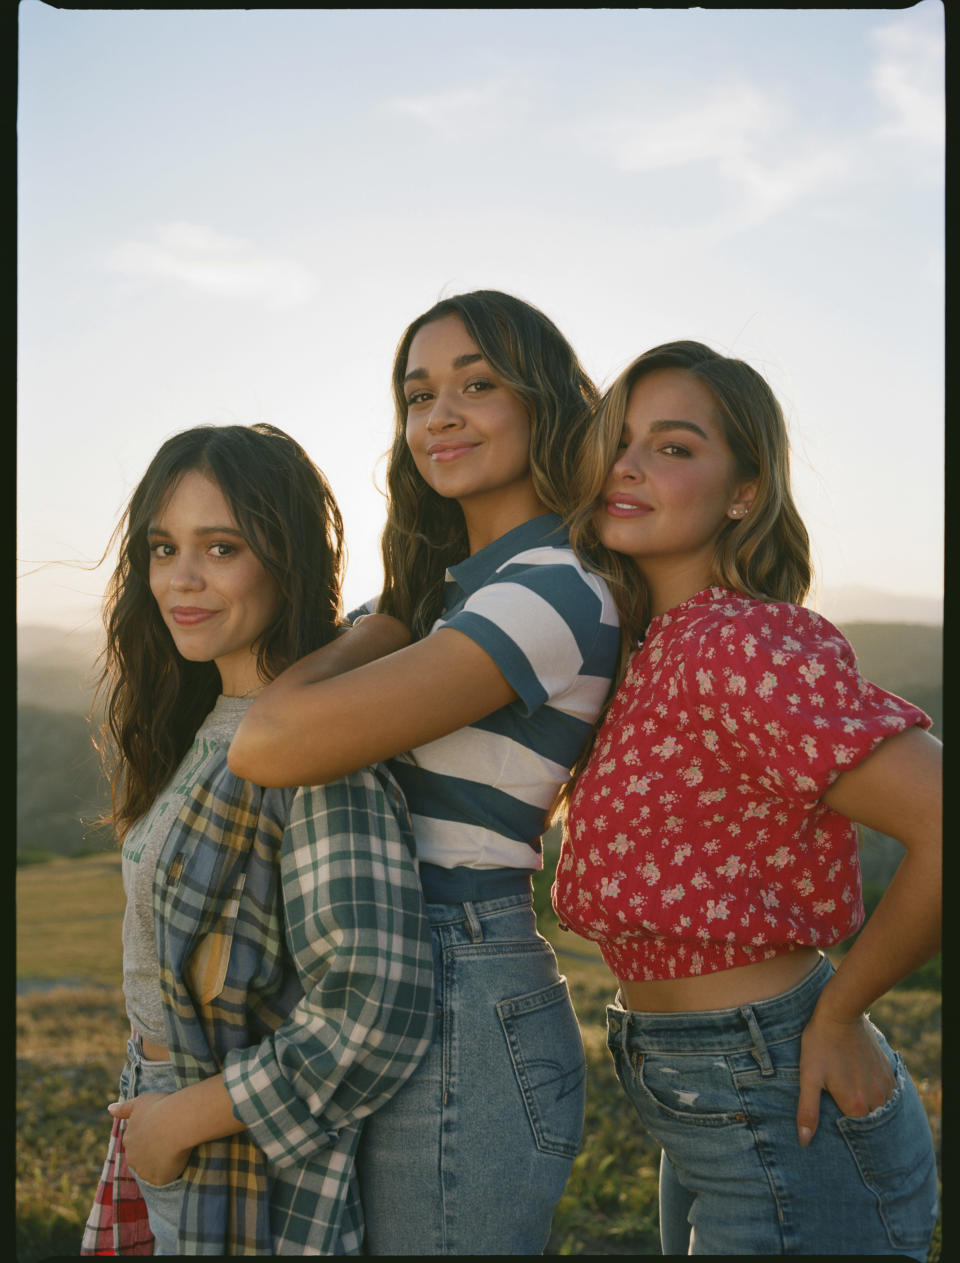 Looks from American Eagle's fall 2021 campaign, with cast members, Jenna Ortega, Madison Bailey and Addison Rae. - Credit: Courtesy Photo AEO